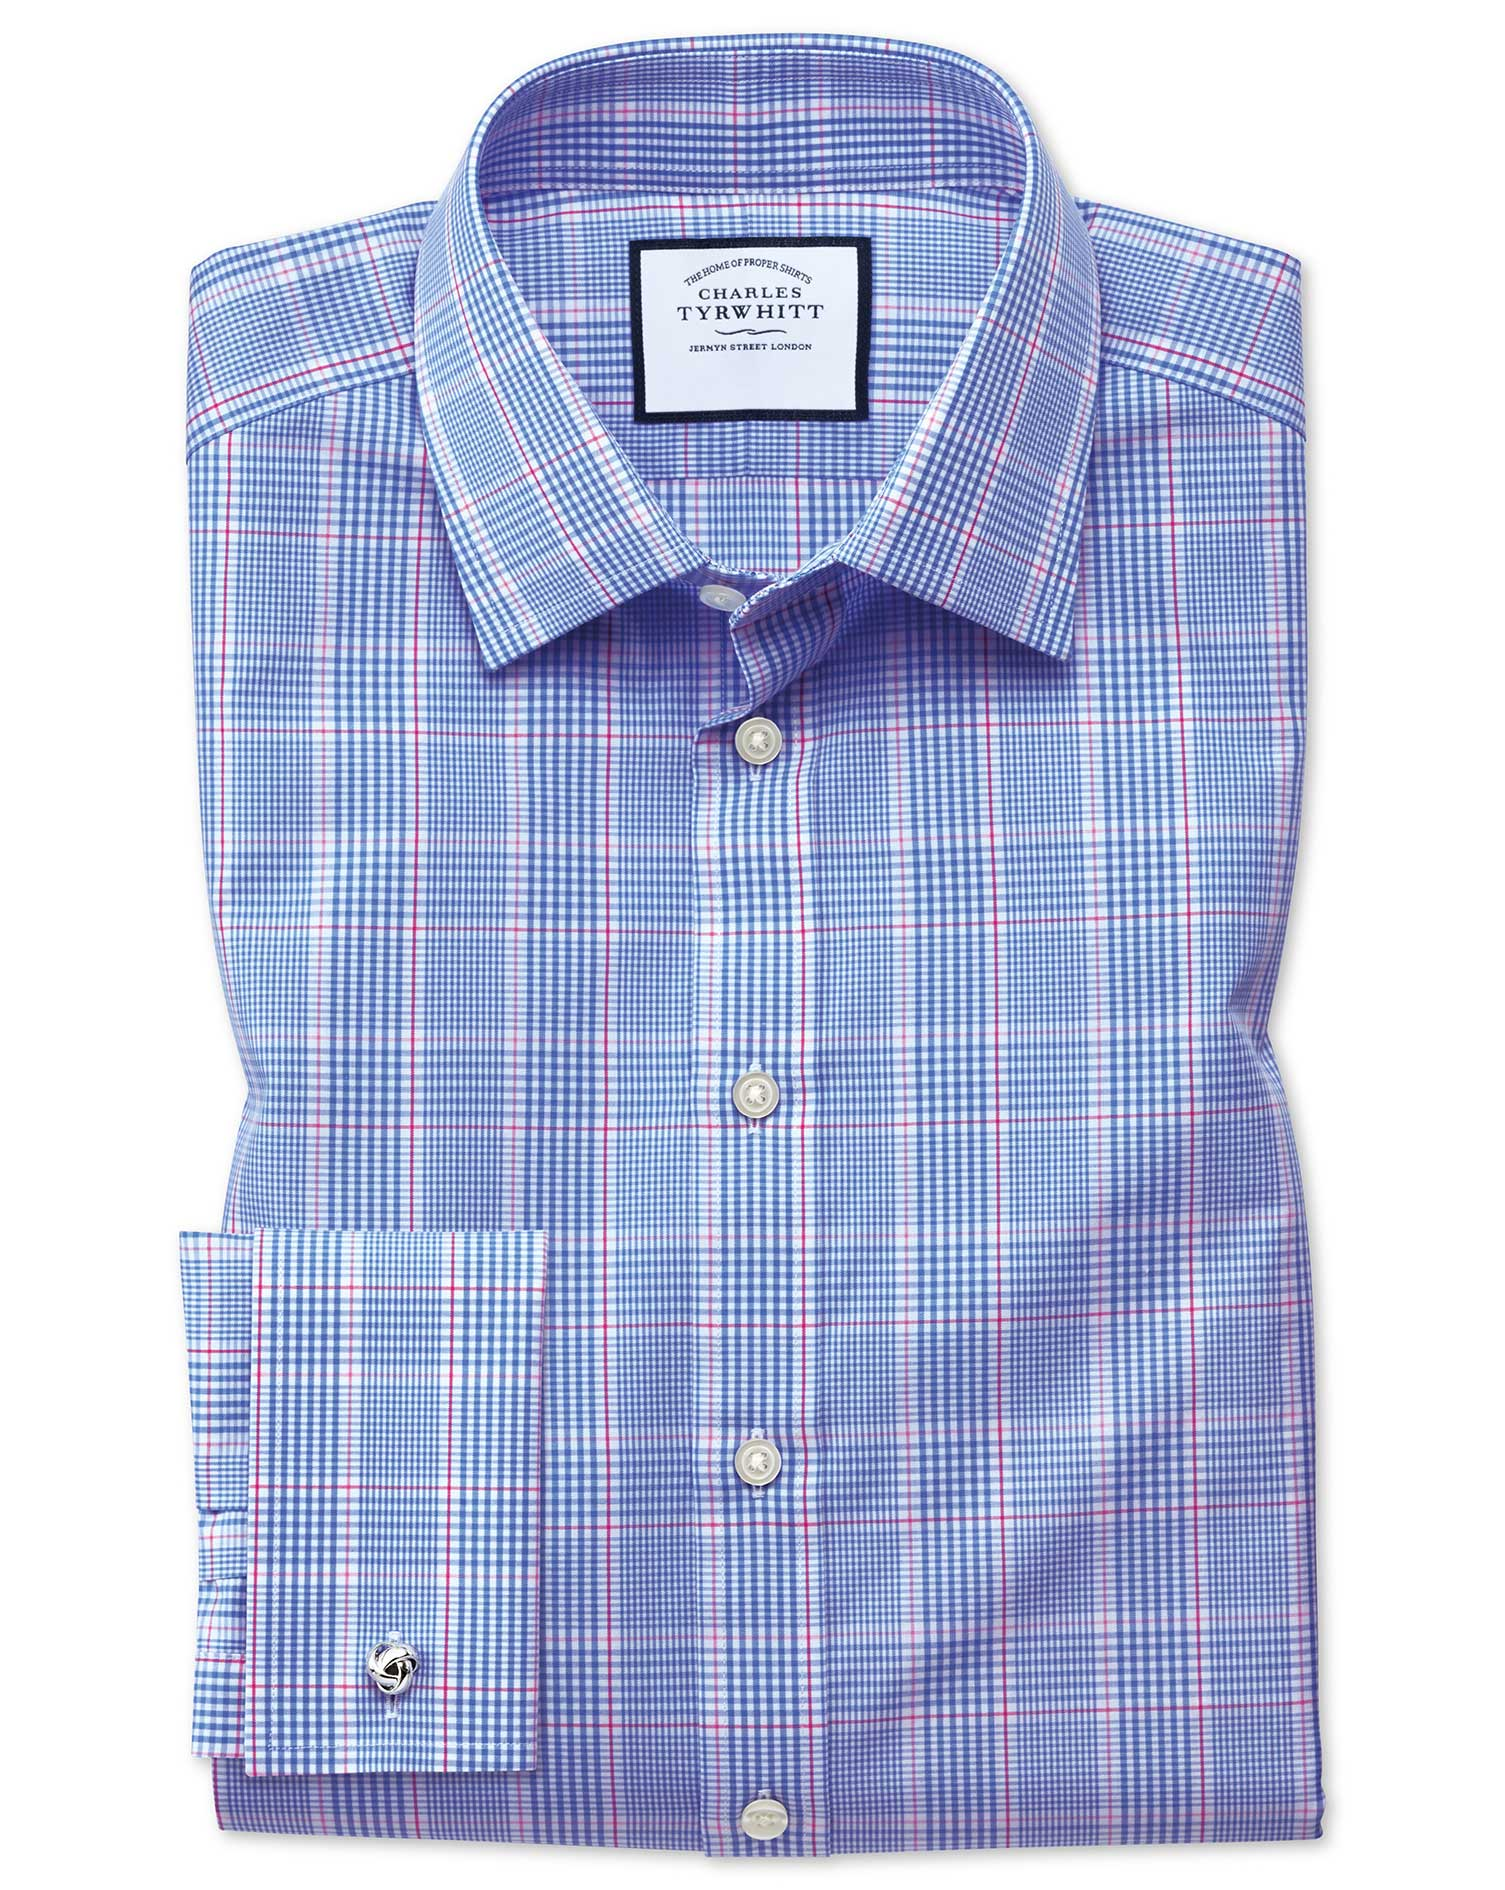 Slim Fit Prince Of Wales Blue Cotton Formal Shirt Single Cuff Size 15.5/33 by Charles Tyrwhitt